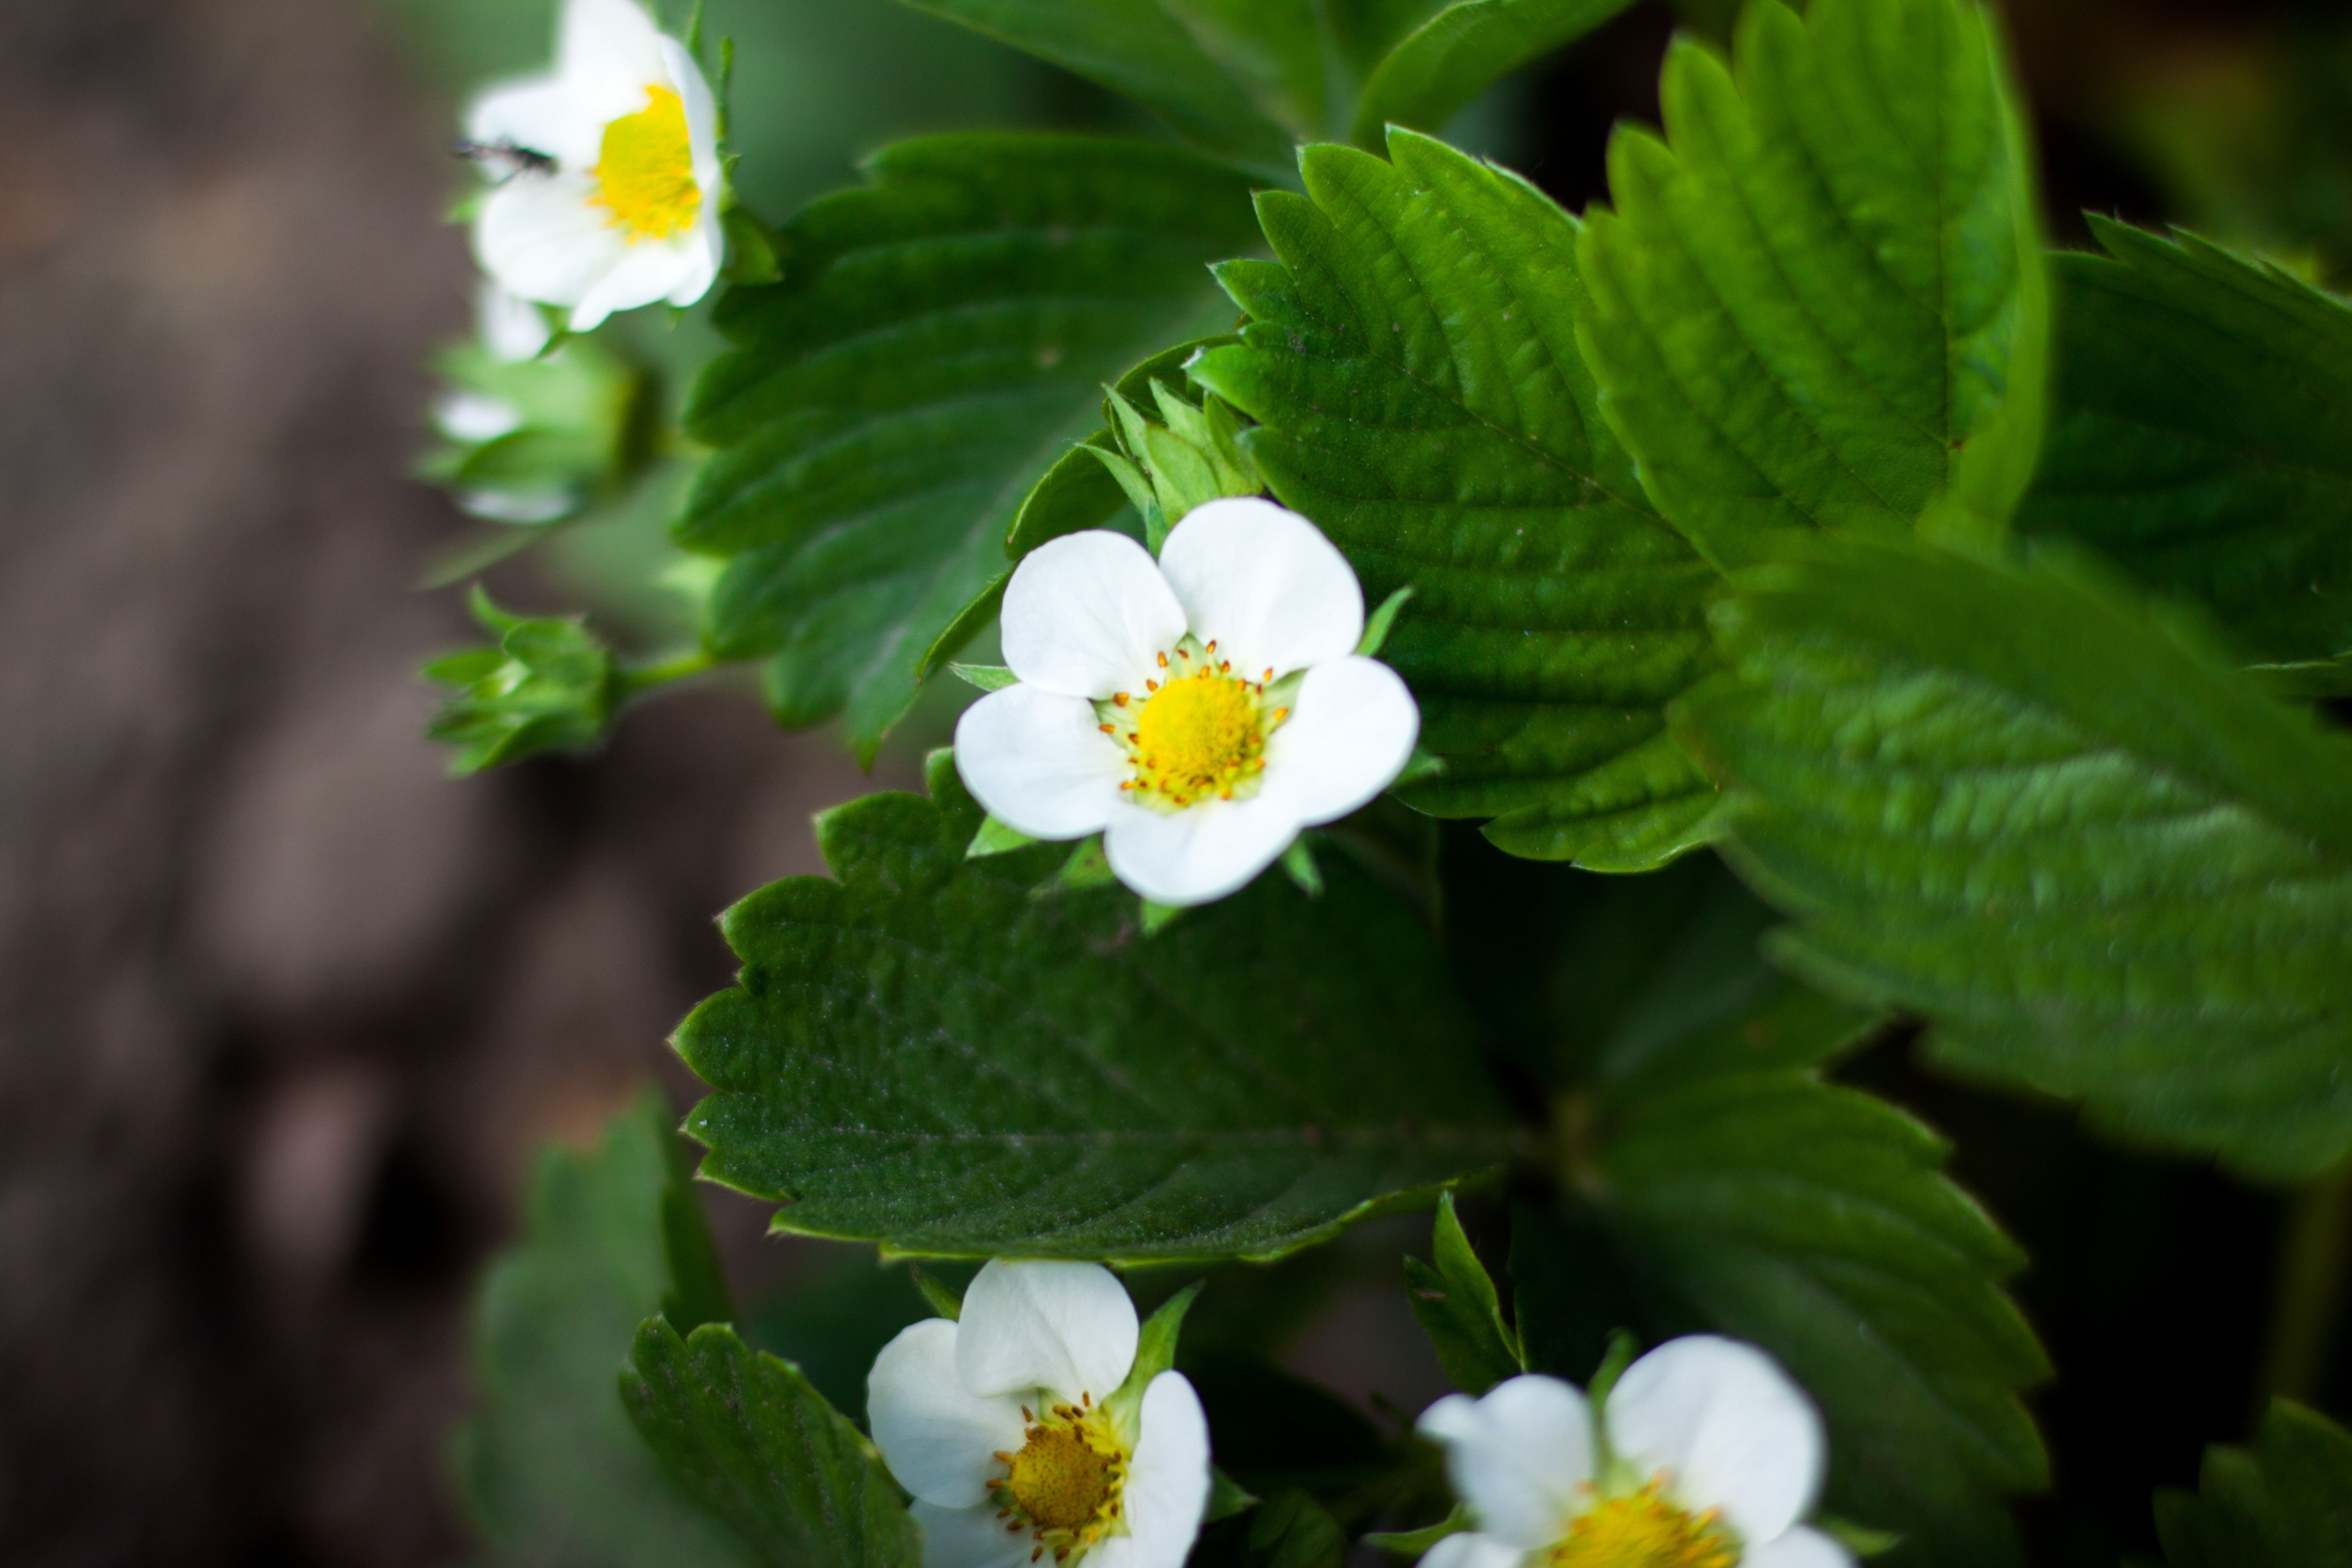 10 Seascape Bare-Root Strawberry Plants Including FREE strawberry planting guide and strawberry mini cookbook